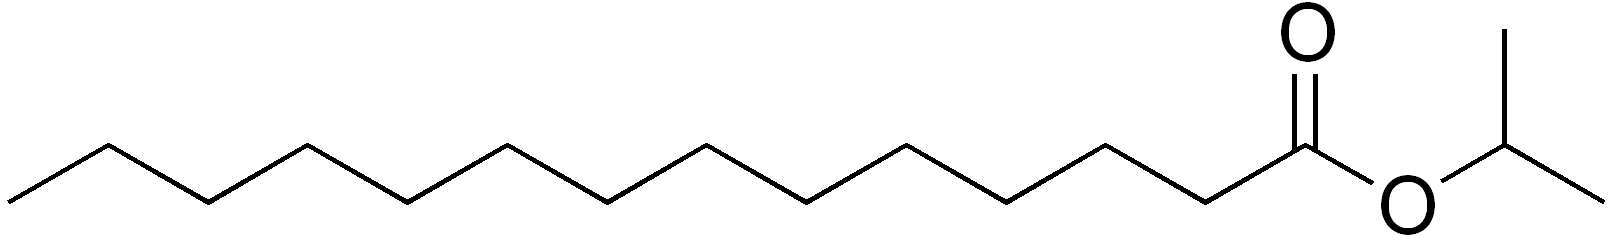 Difference Between Isopropyl Myristate and Isopropyl Palmitate